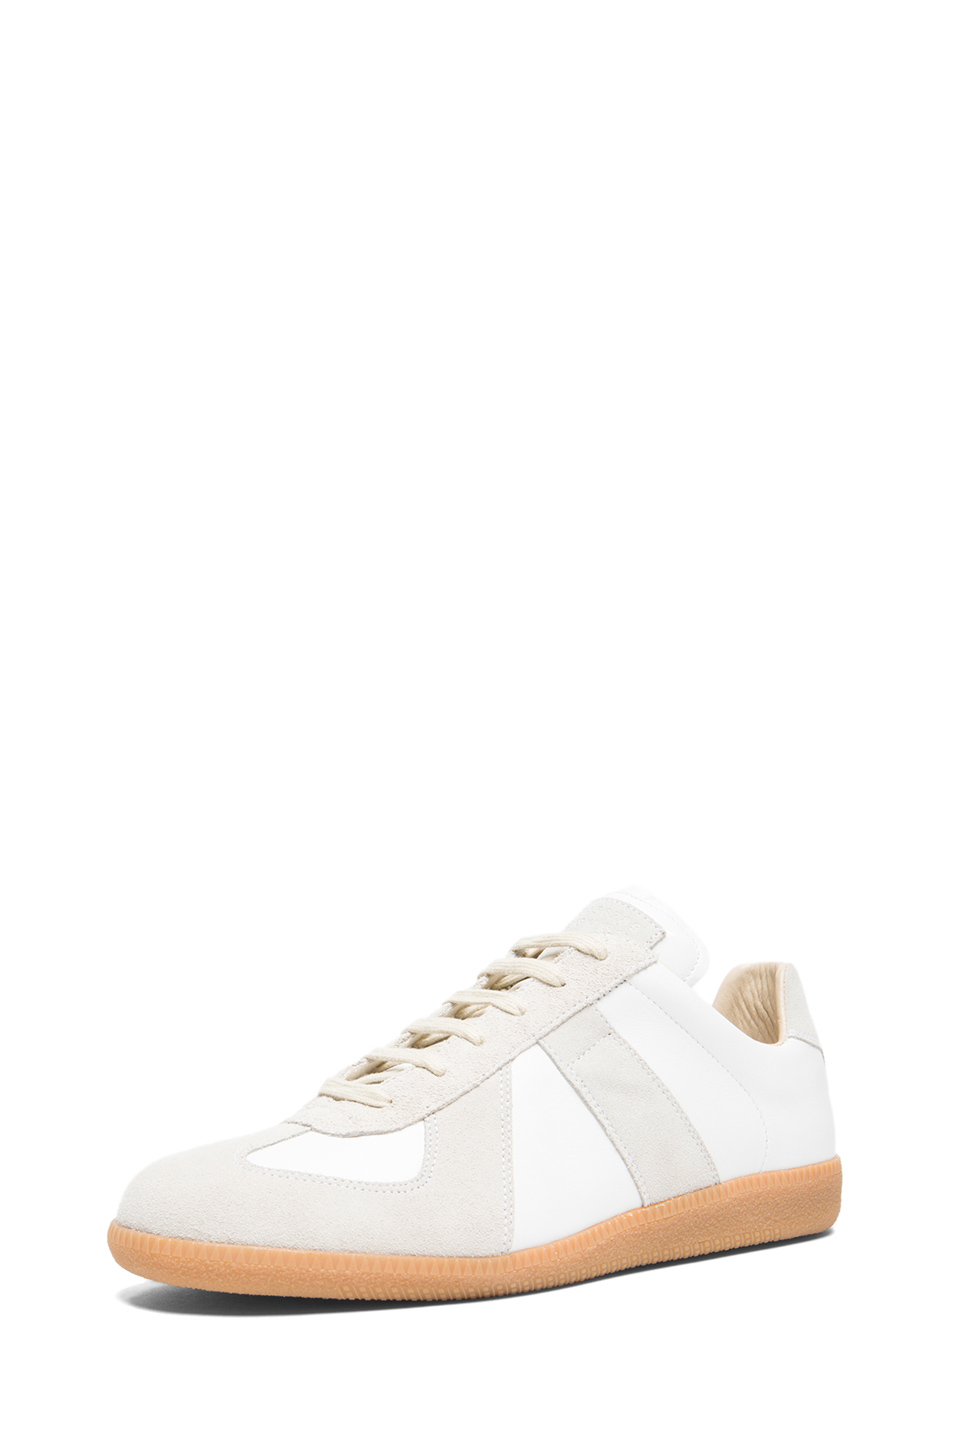 maison margiela 39 replica 39 sneakers in white save 35 lyst. Black Bedroom Furniture Sets. Home Design Ideas